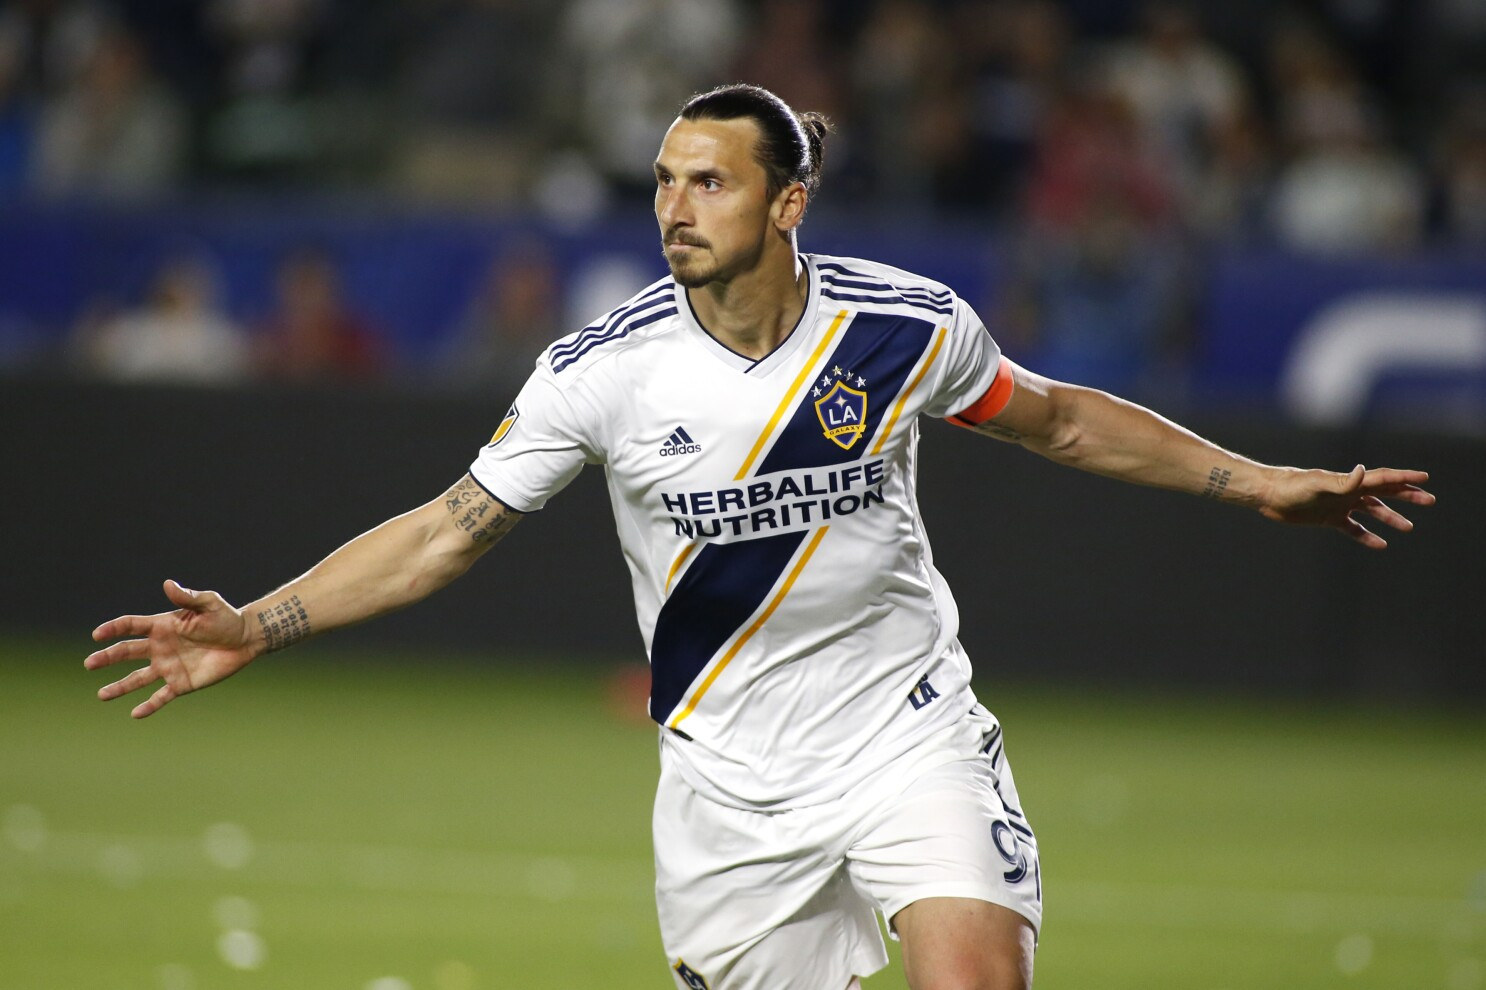 Galaxy's draw against Sounders feels like a loss